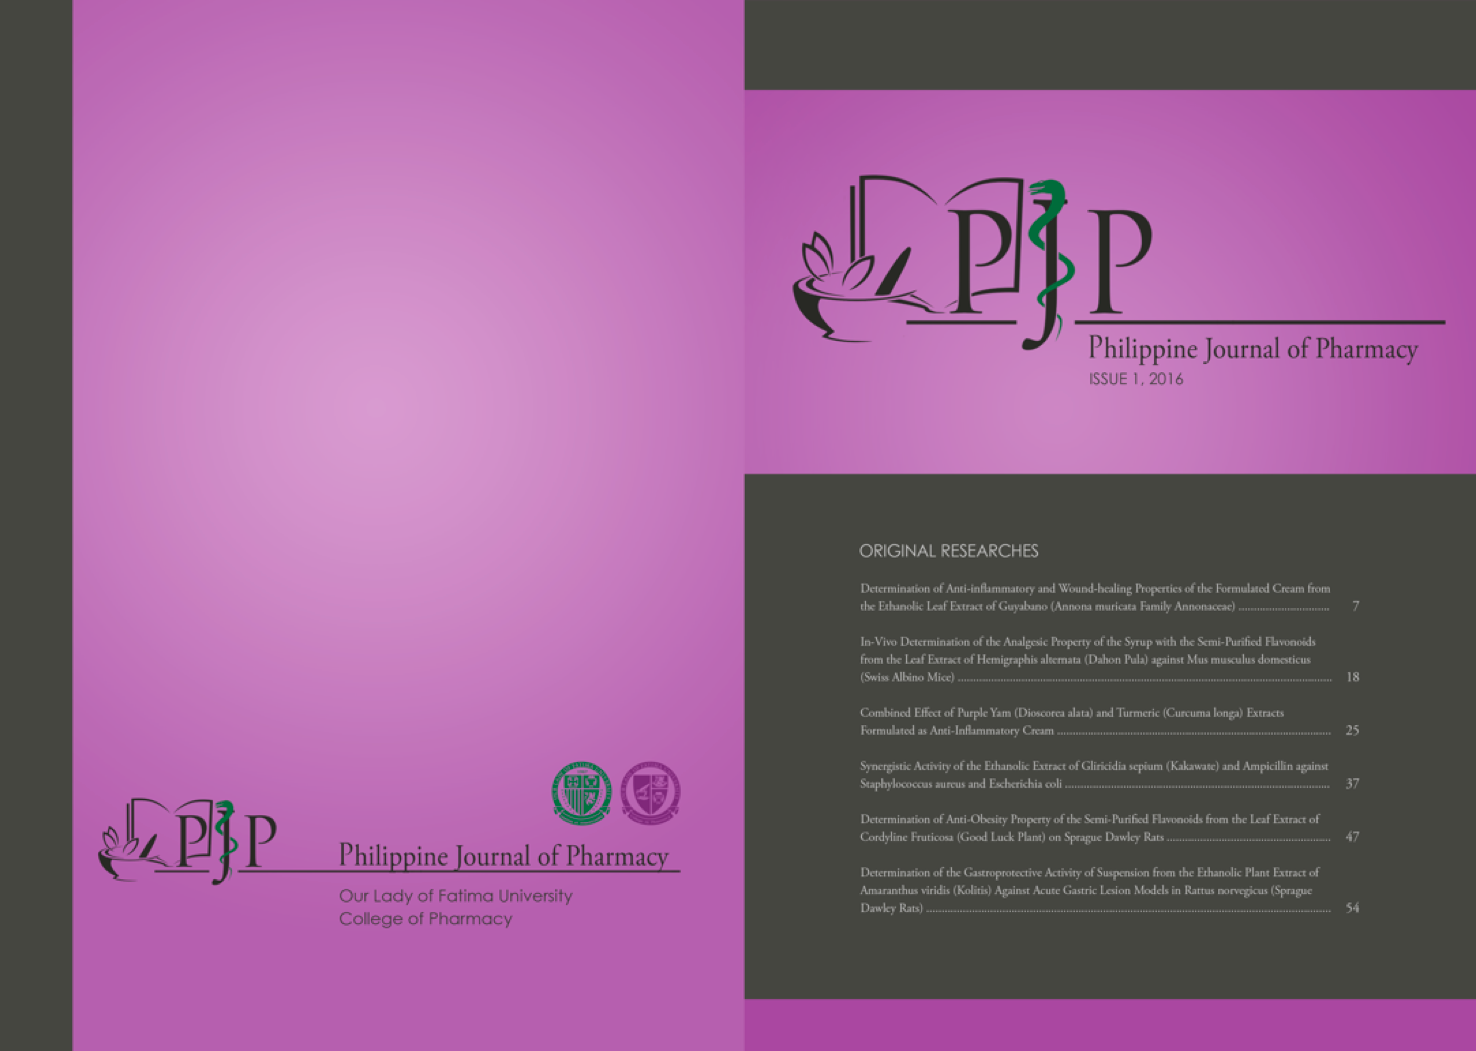 PHILIPPINE JOURNAL OF PHARMACY